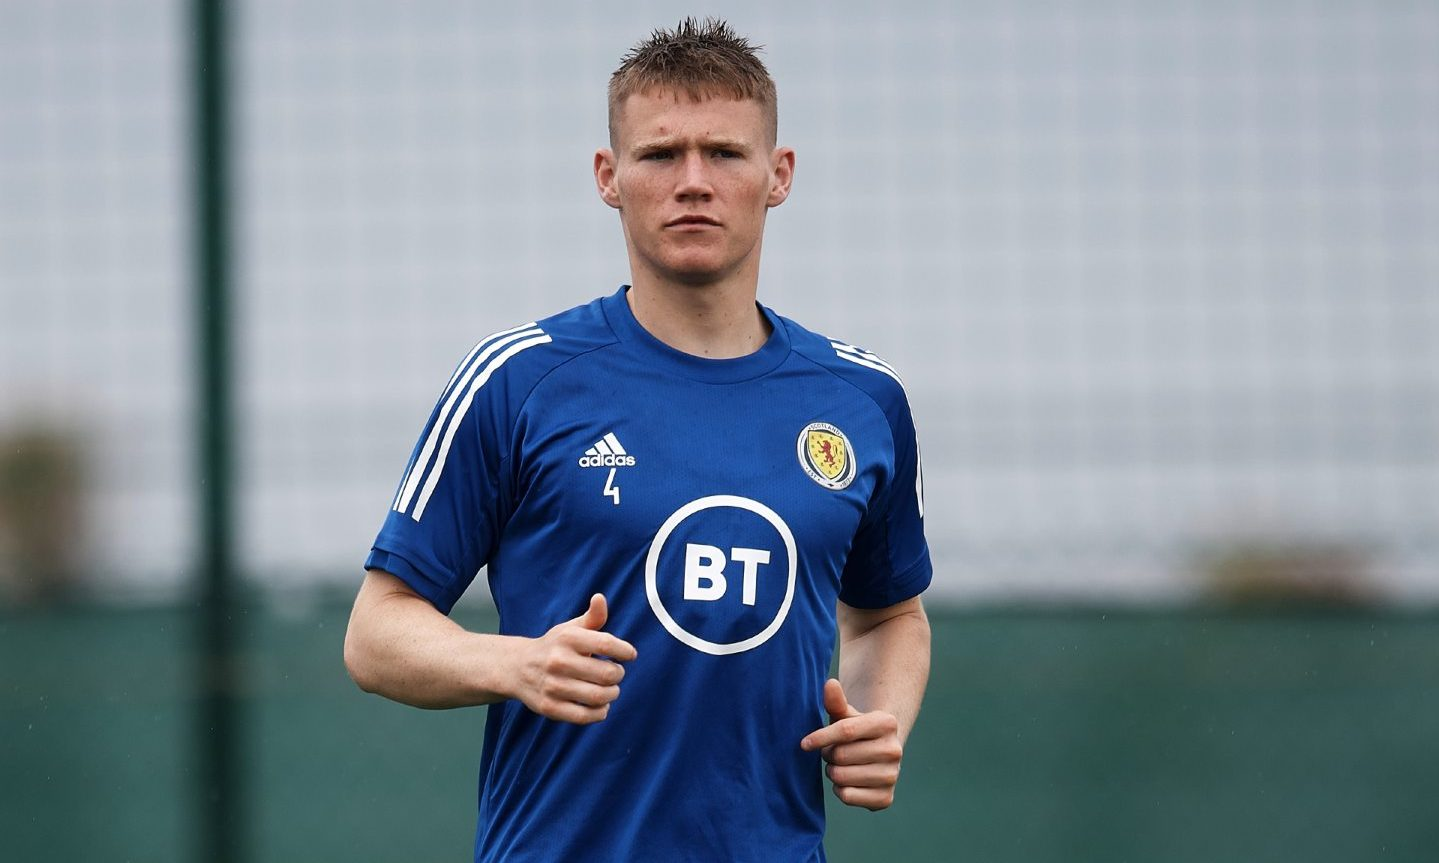 Scott McTominay starts for Scotland against Luxembourg.